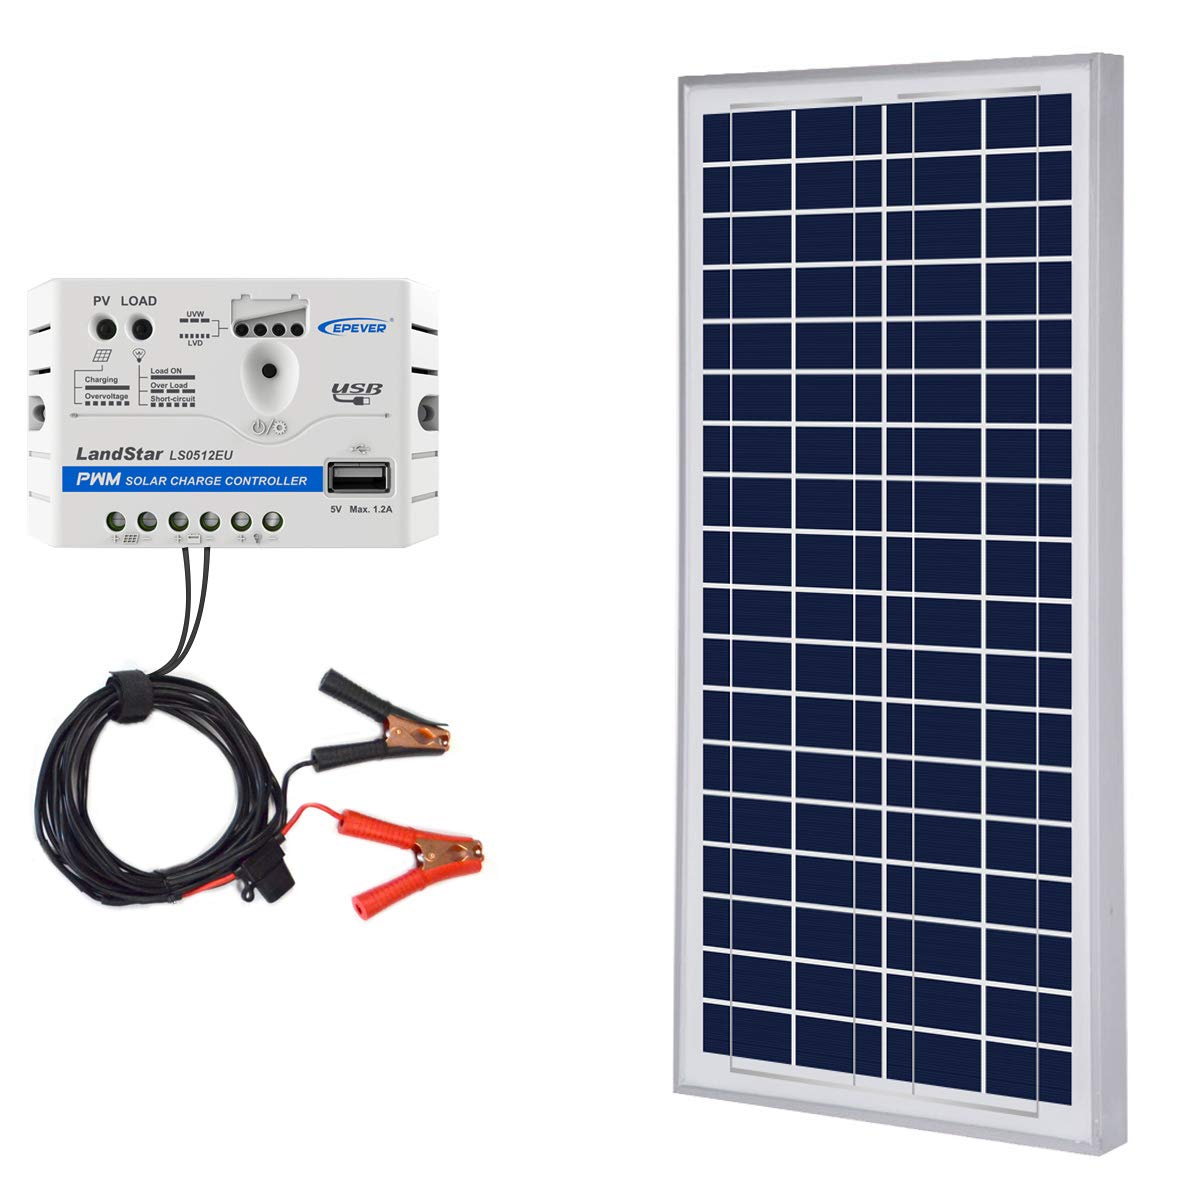 ACOPOWER 35W 12V Solar Charger Kit, 35 Watts Polycrystalline Solar Panel & 5A Charge Controller for RV, Boats, Camping; w USB 5V Output as Phone Charger